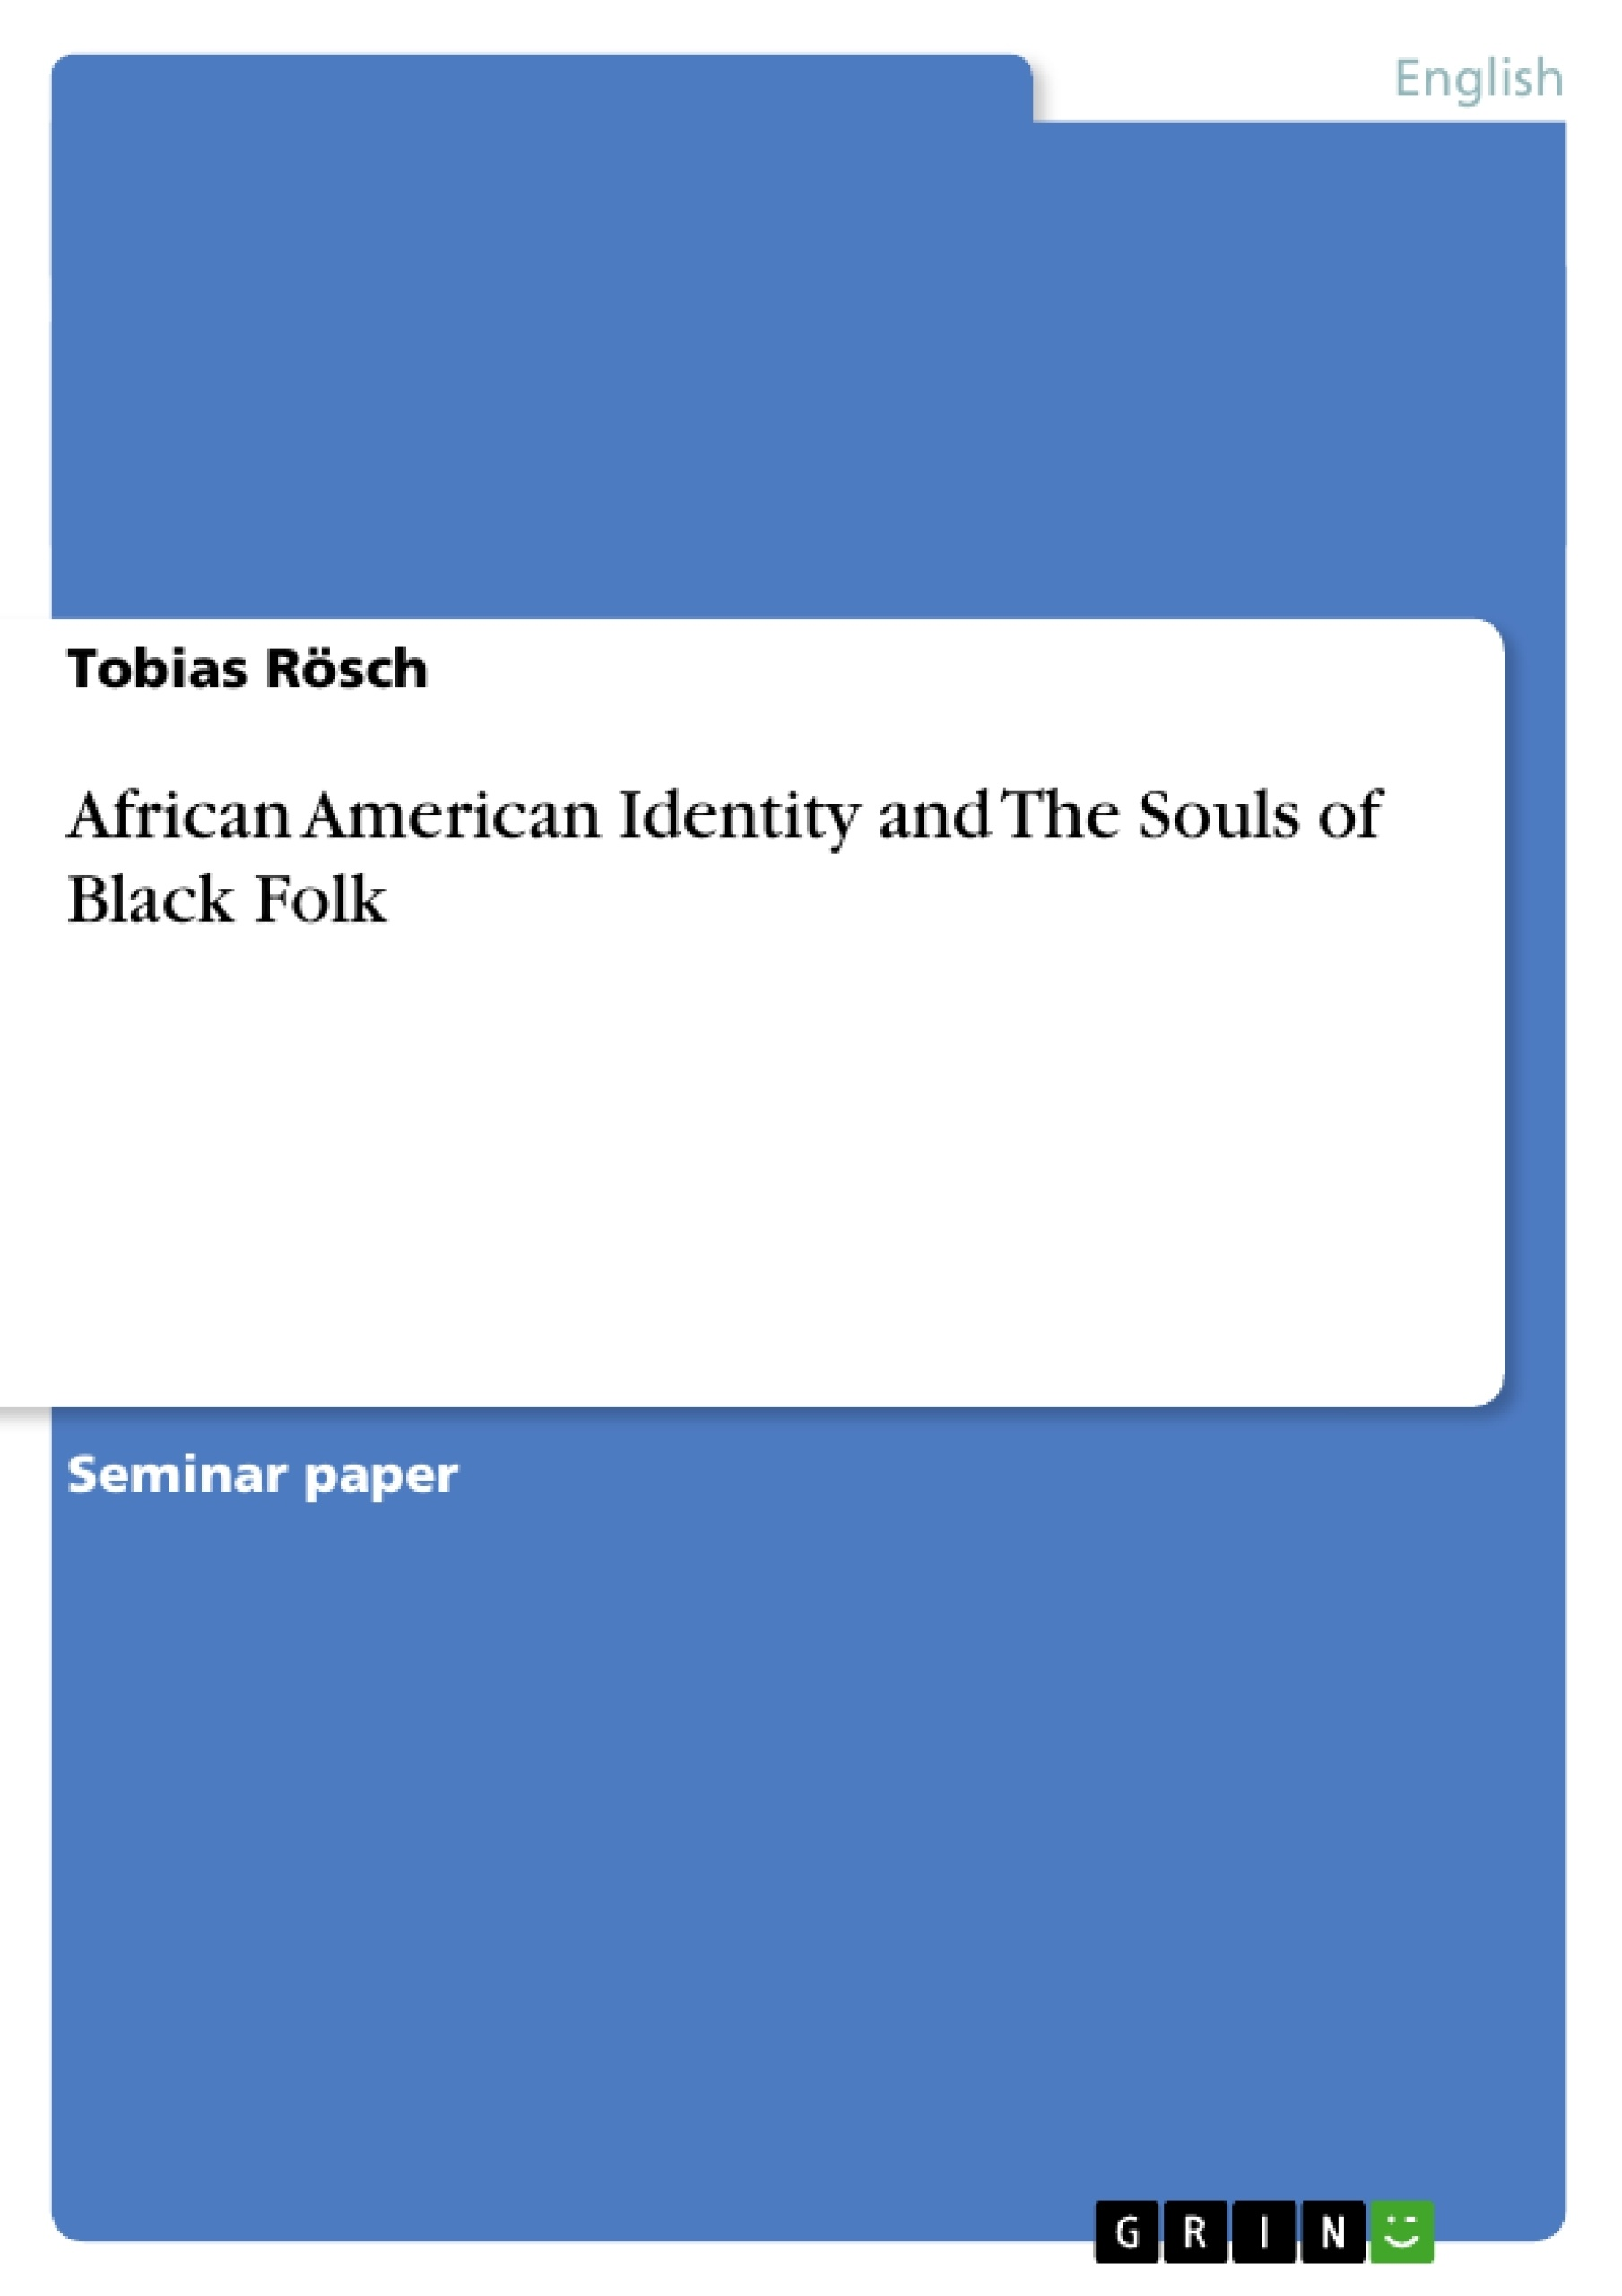 Title: African American Identity and The Souls of Black Folk